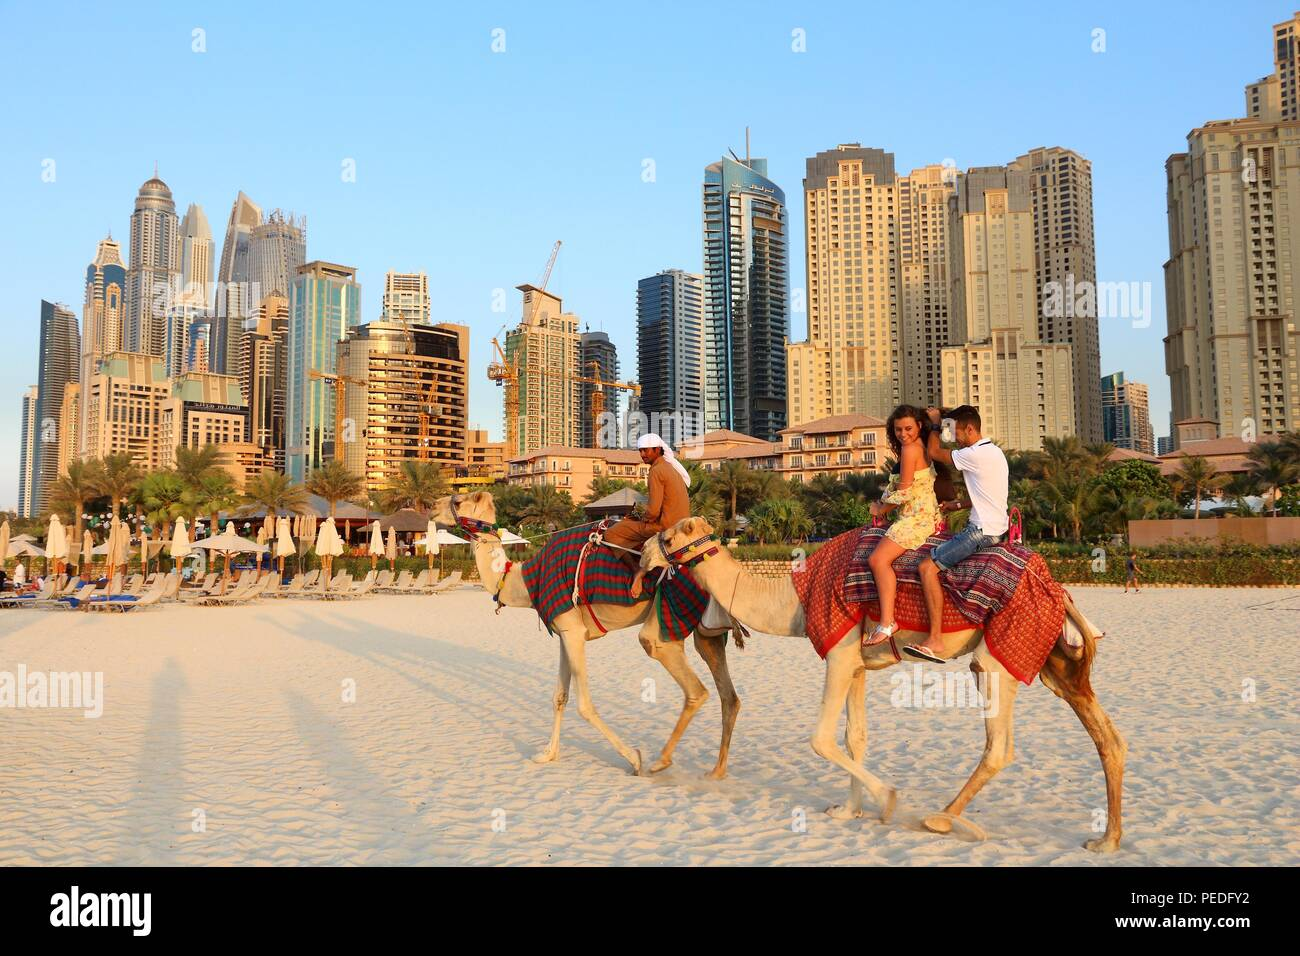 DUBAI, UAE - NOVEMBER 23, 2017: People ride camels in front of Jumeirah Beach Residence in Dubai, United Arab Emirates. Dubai has 14.9 million annual  - Stock Image